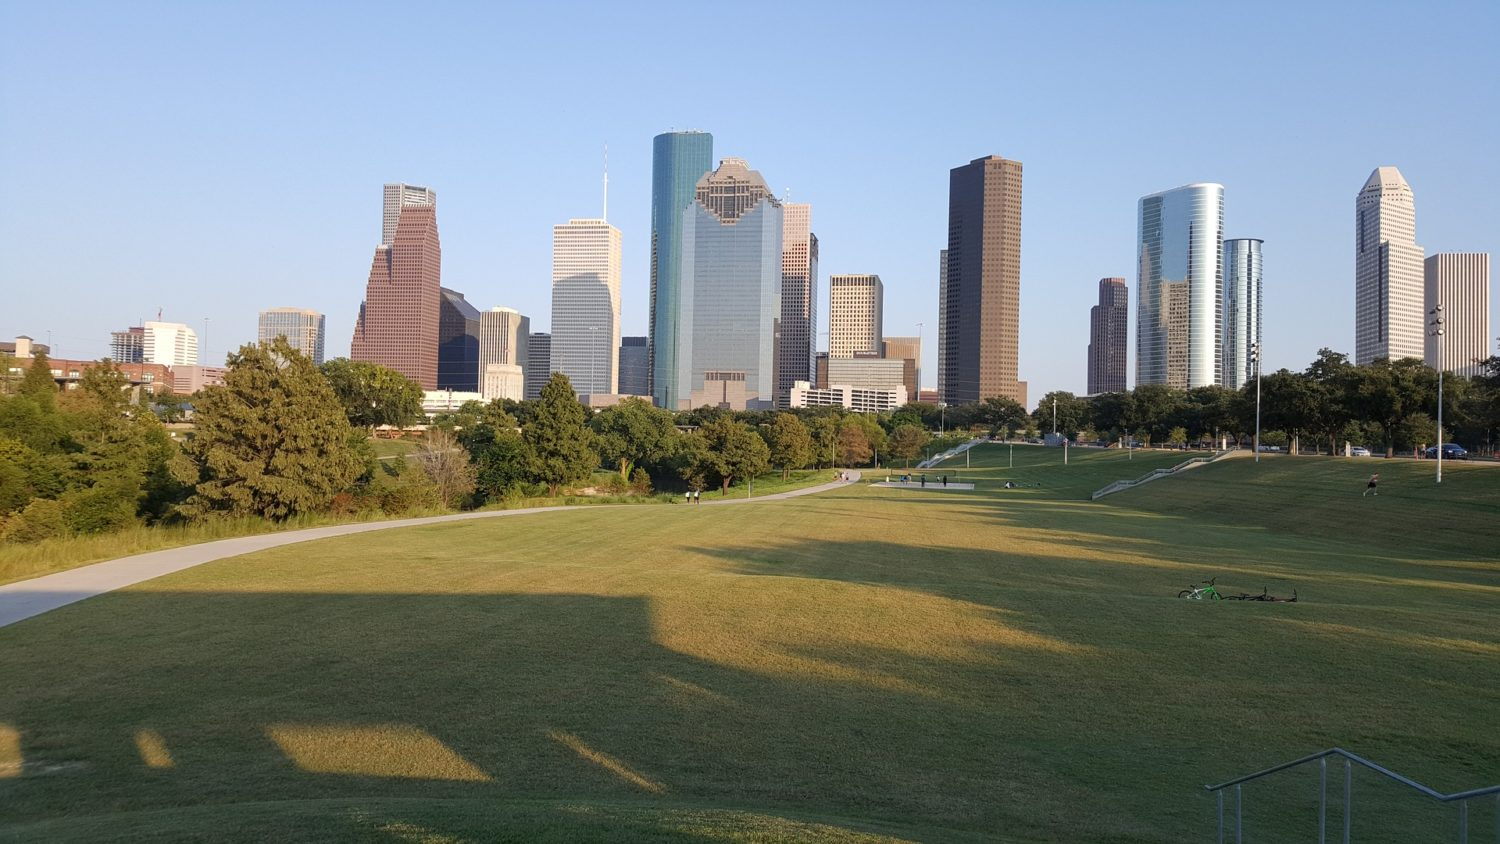 Park in Houston, Texas